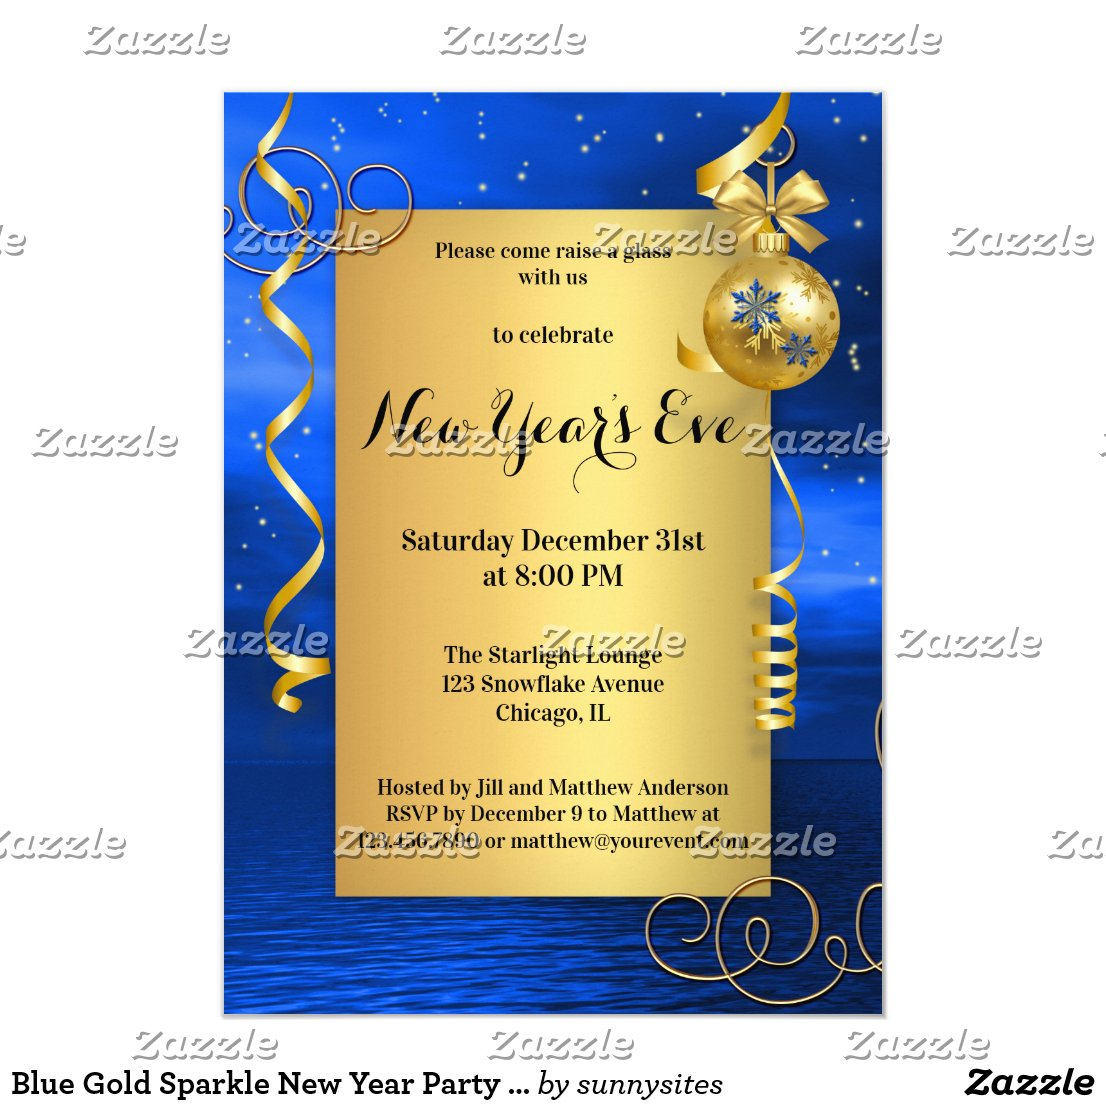 Blue Gold Sparkle New Year Party Invitation